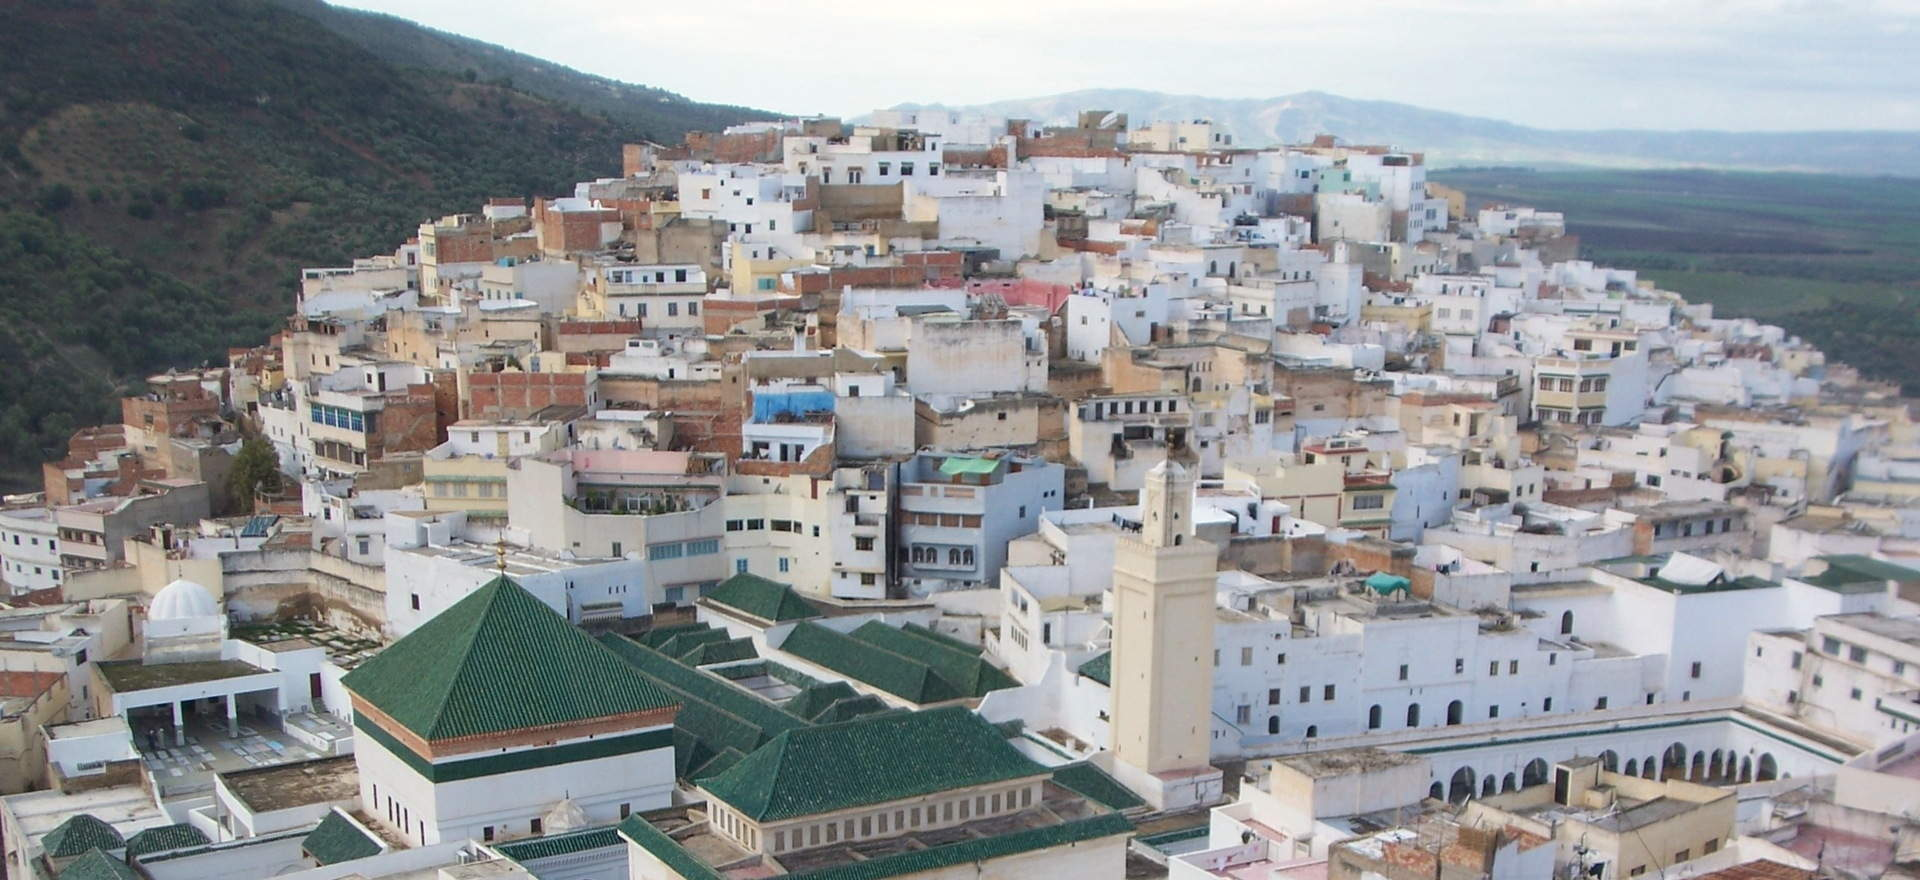 moulay idriss vue arienne chadia tours